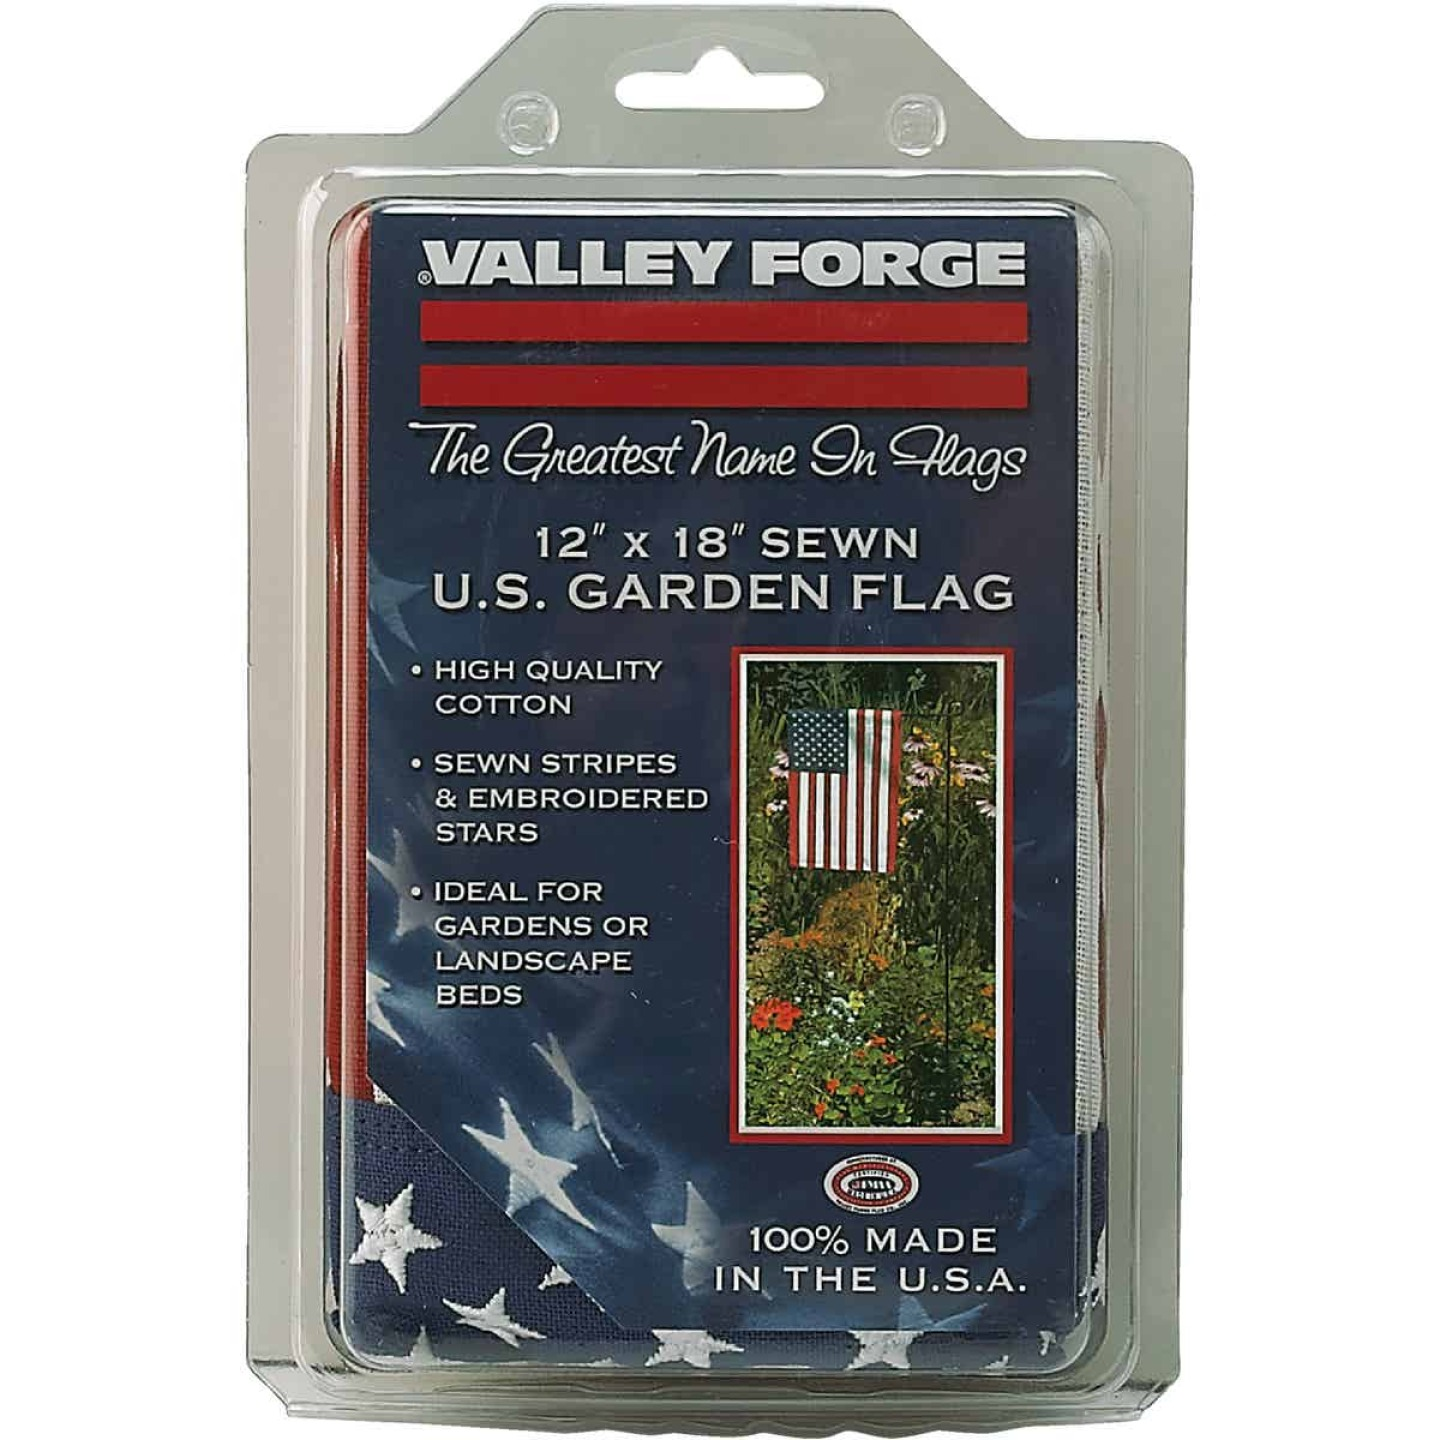 Valley Forge 1 Ft. x 1.5 Ft. Cotton Garden American Flag Image 3